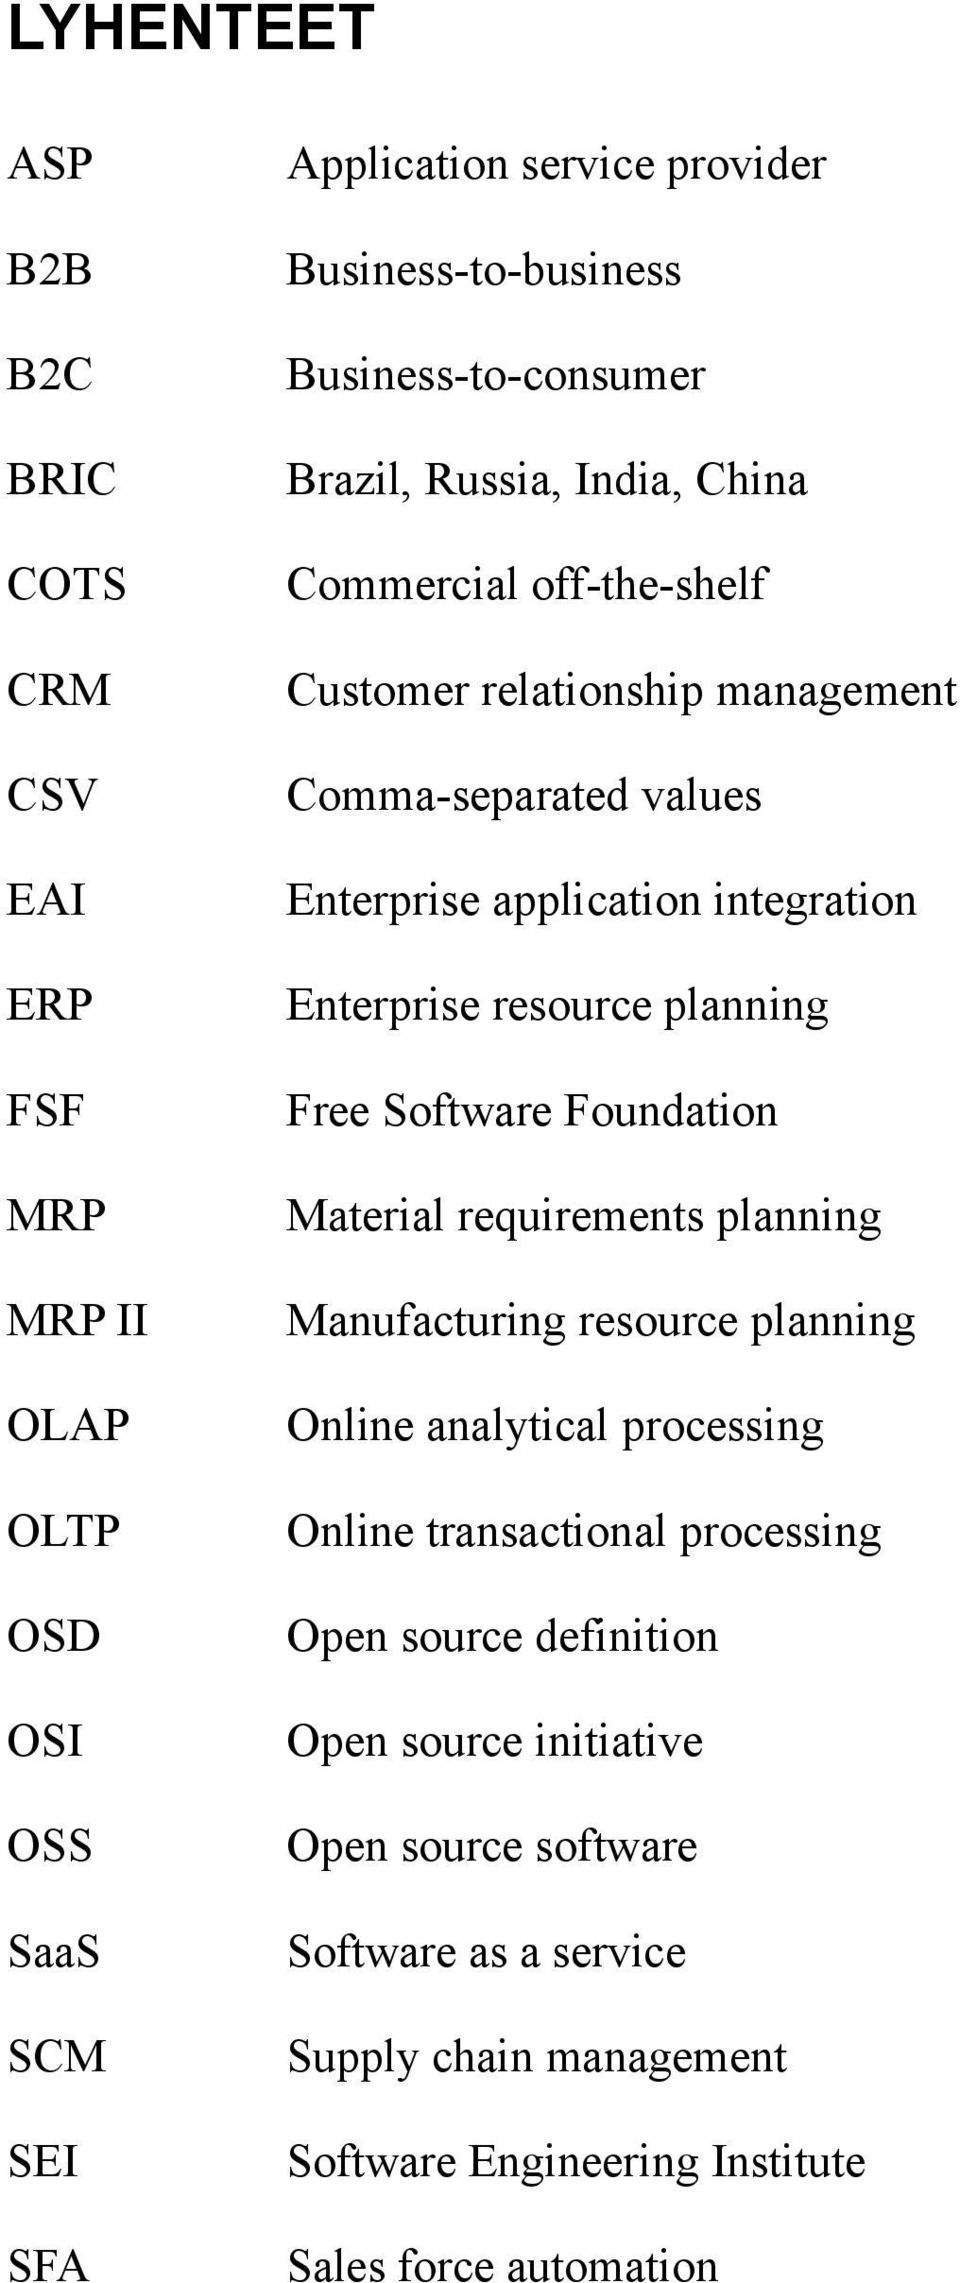 Enterprise resource planning Free Software Foundation Material requirements planning Manufacturing resource planning Online analytical processing Online